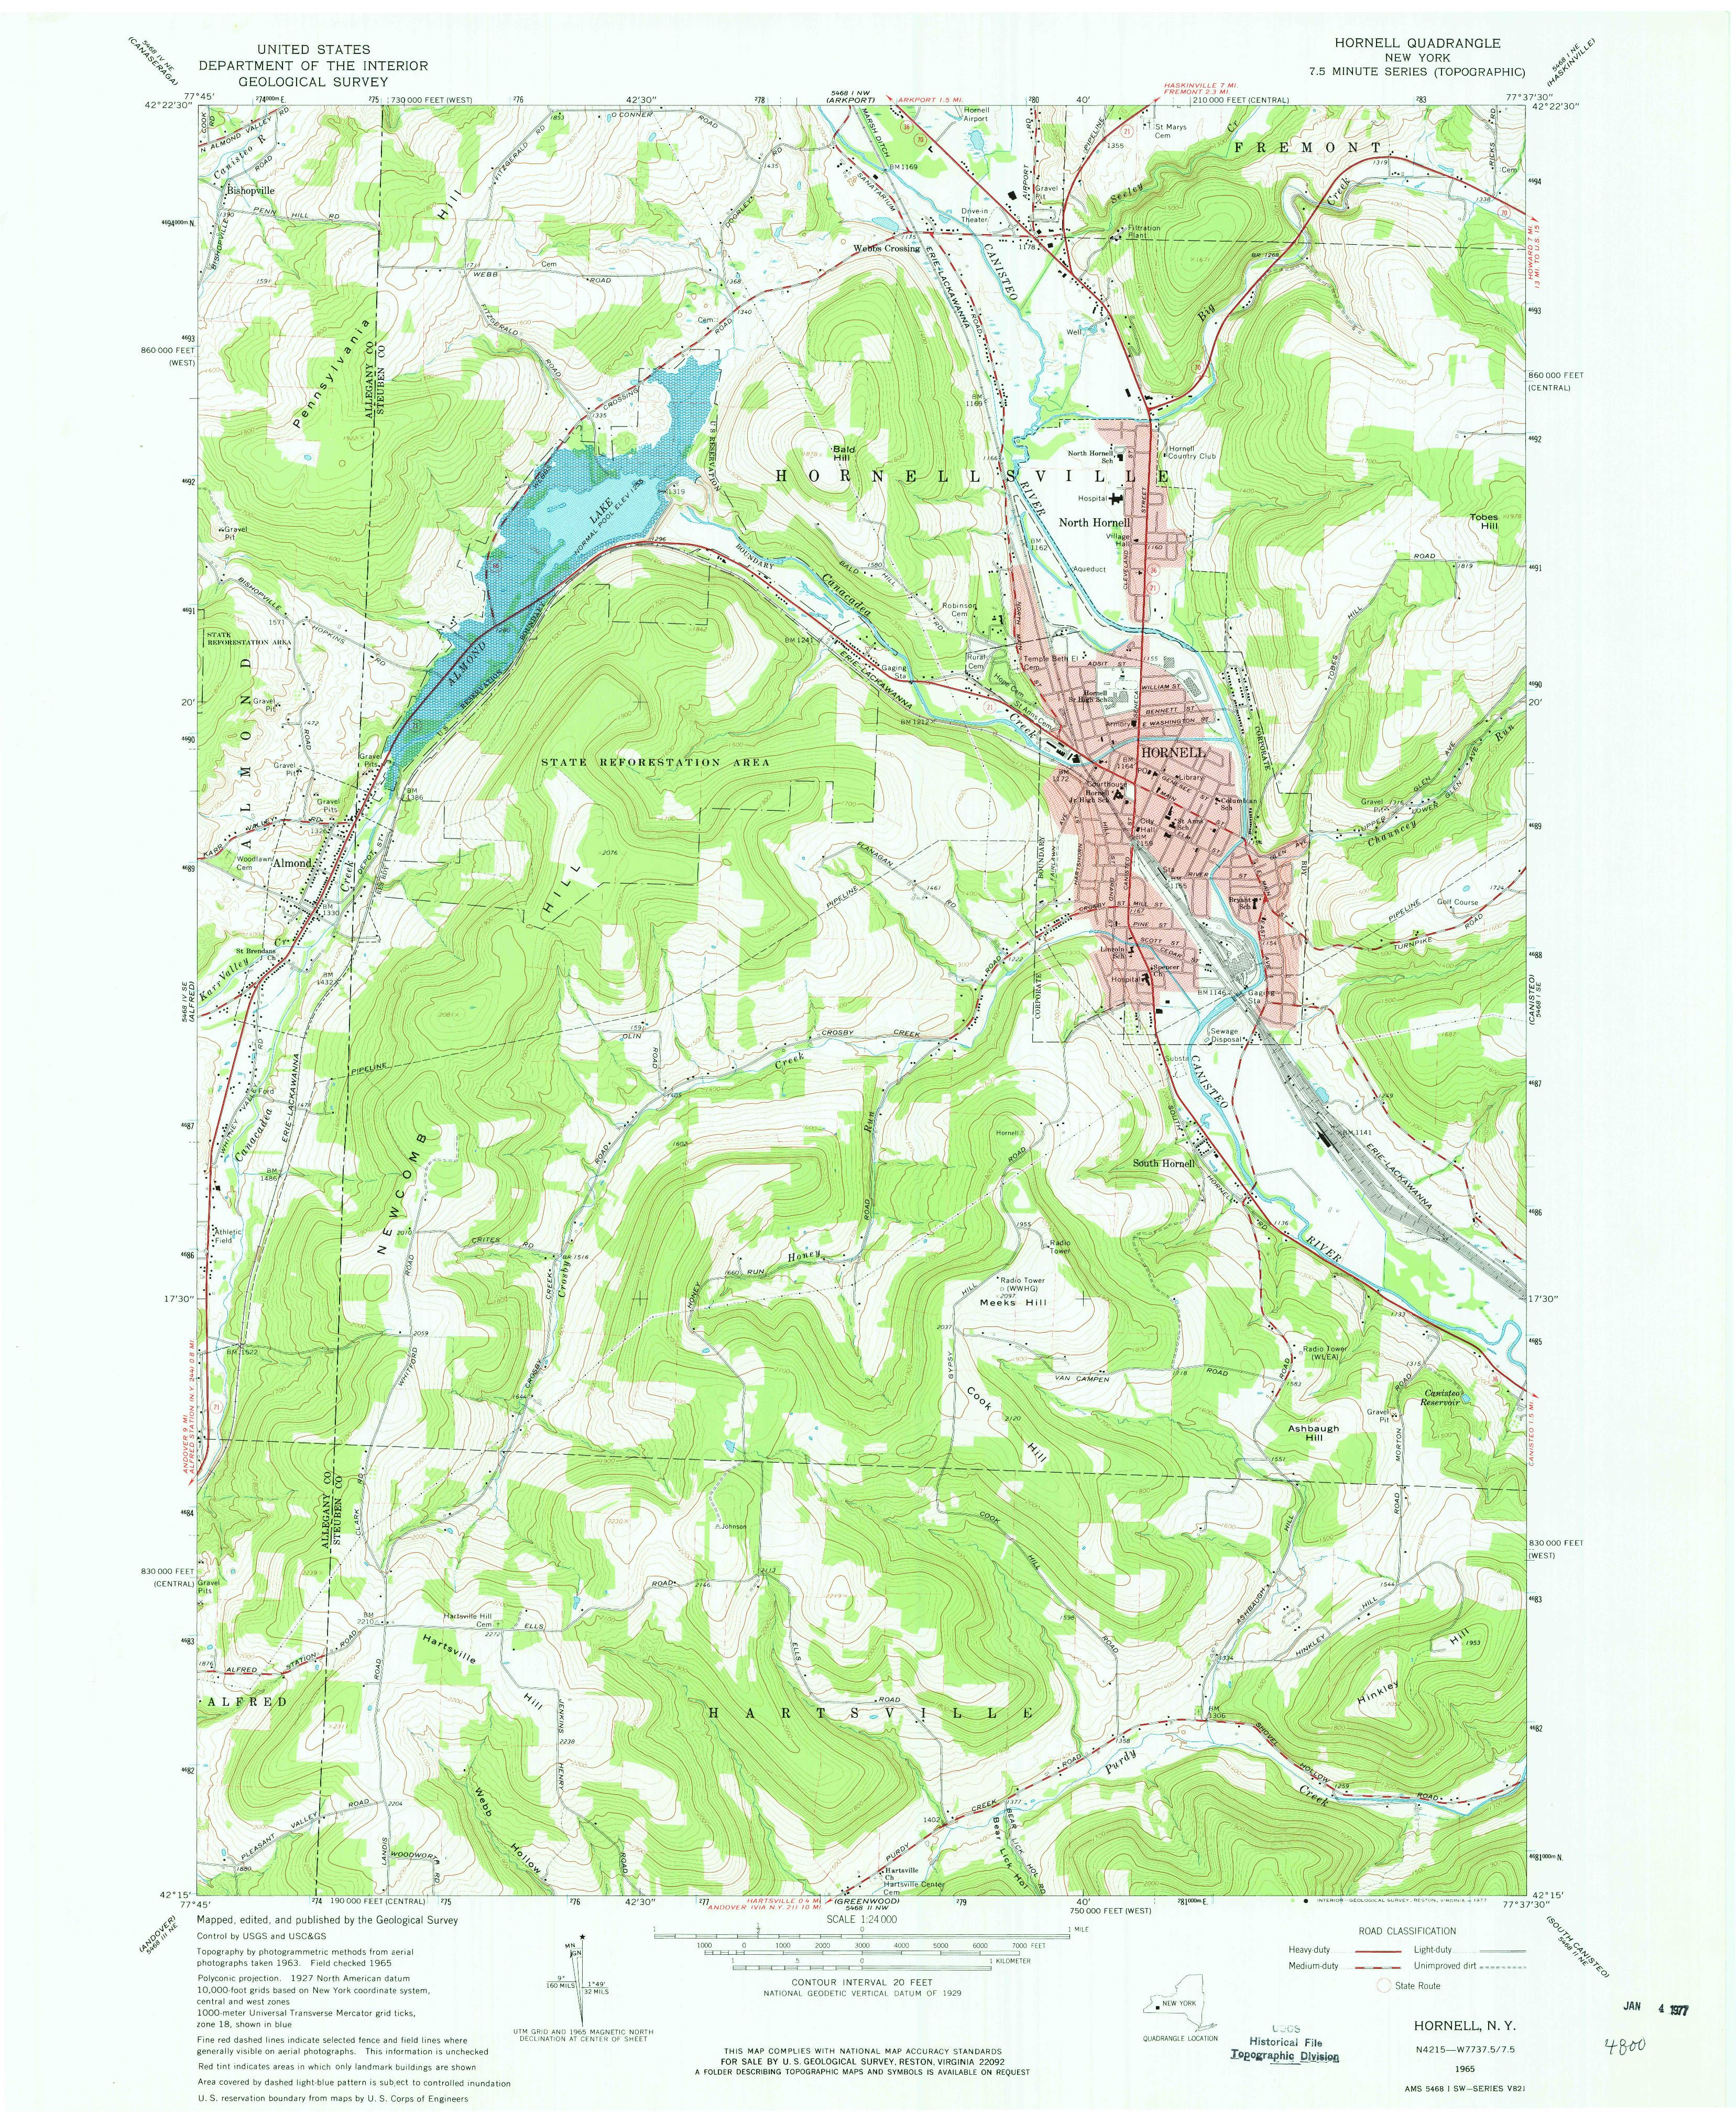 Hornell Ny 1965 Map From The Usgs Historical Topographic Map